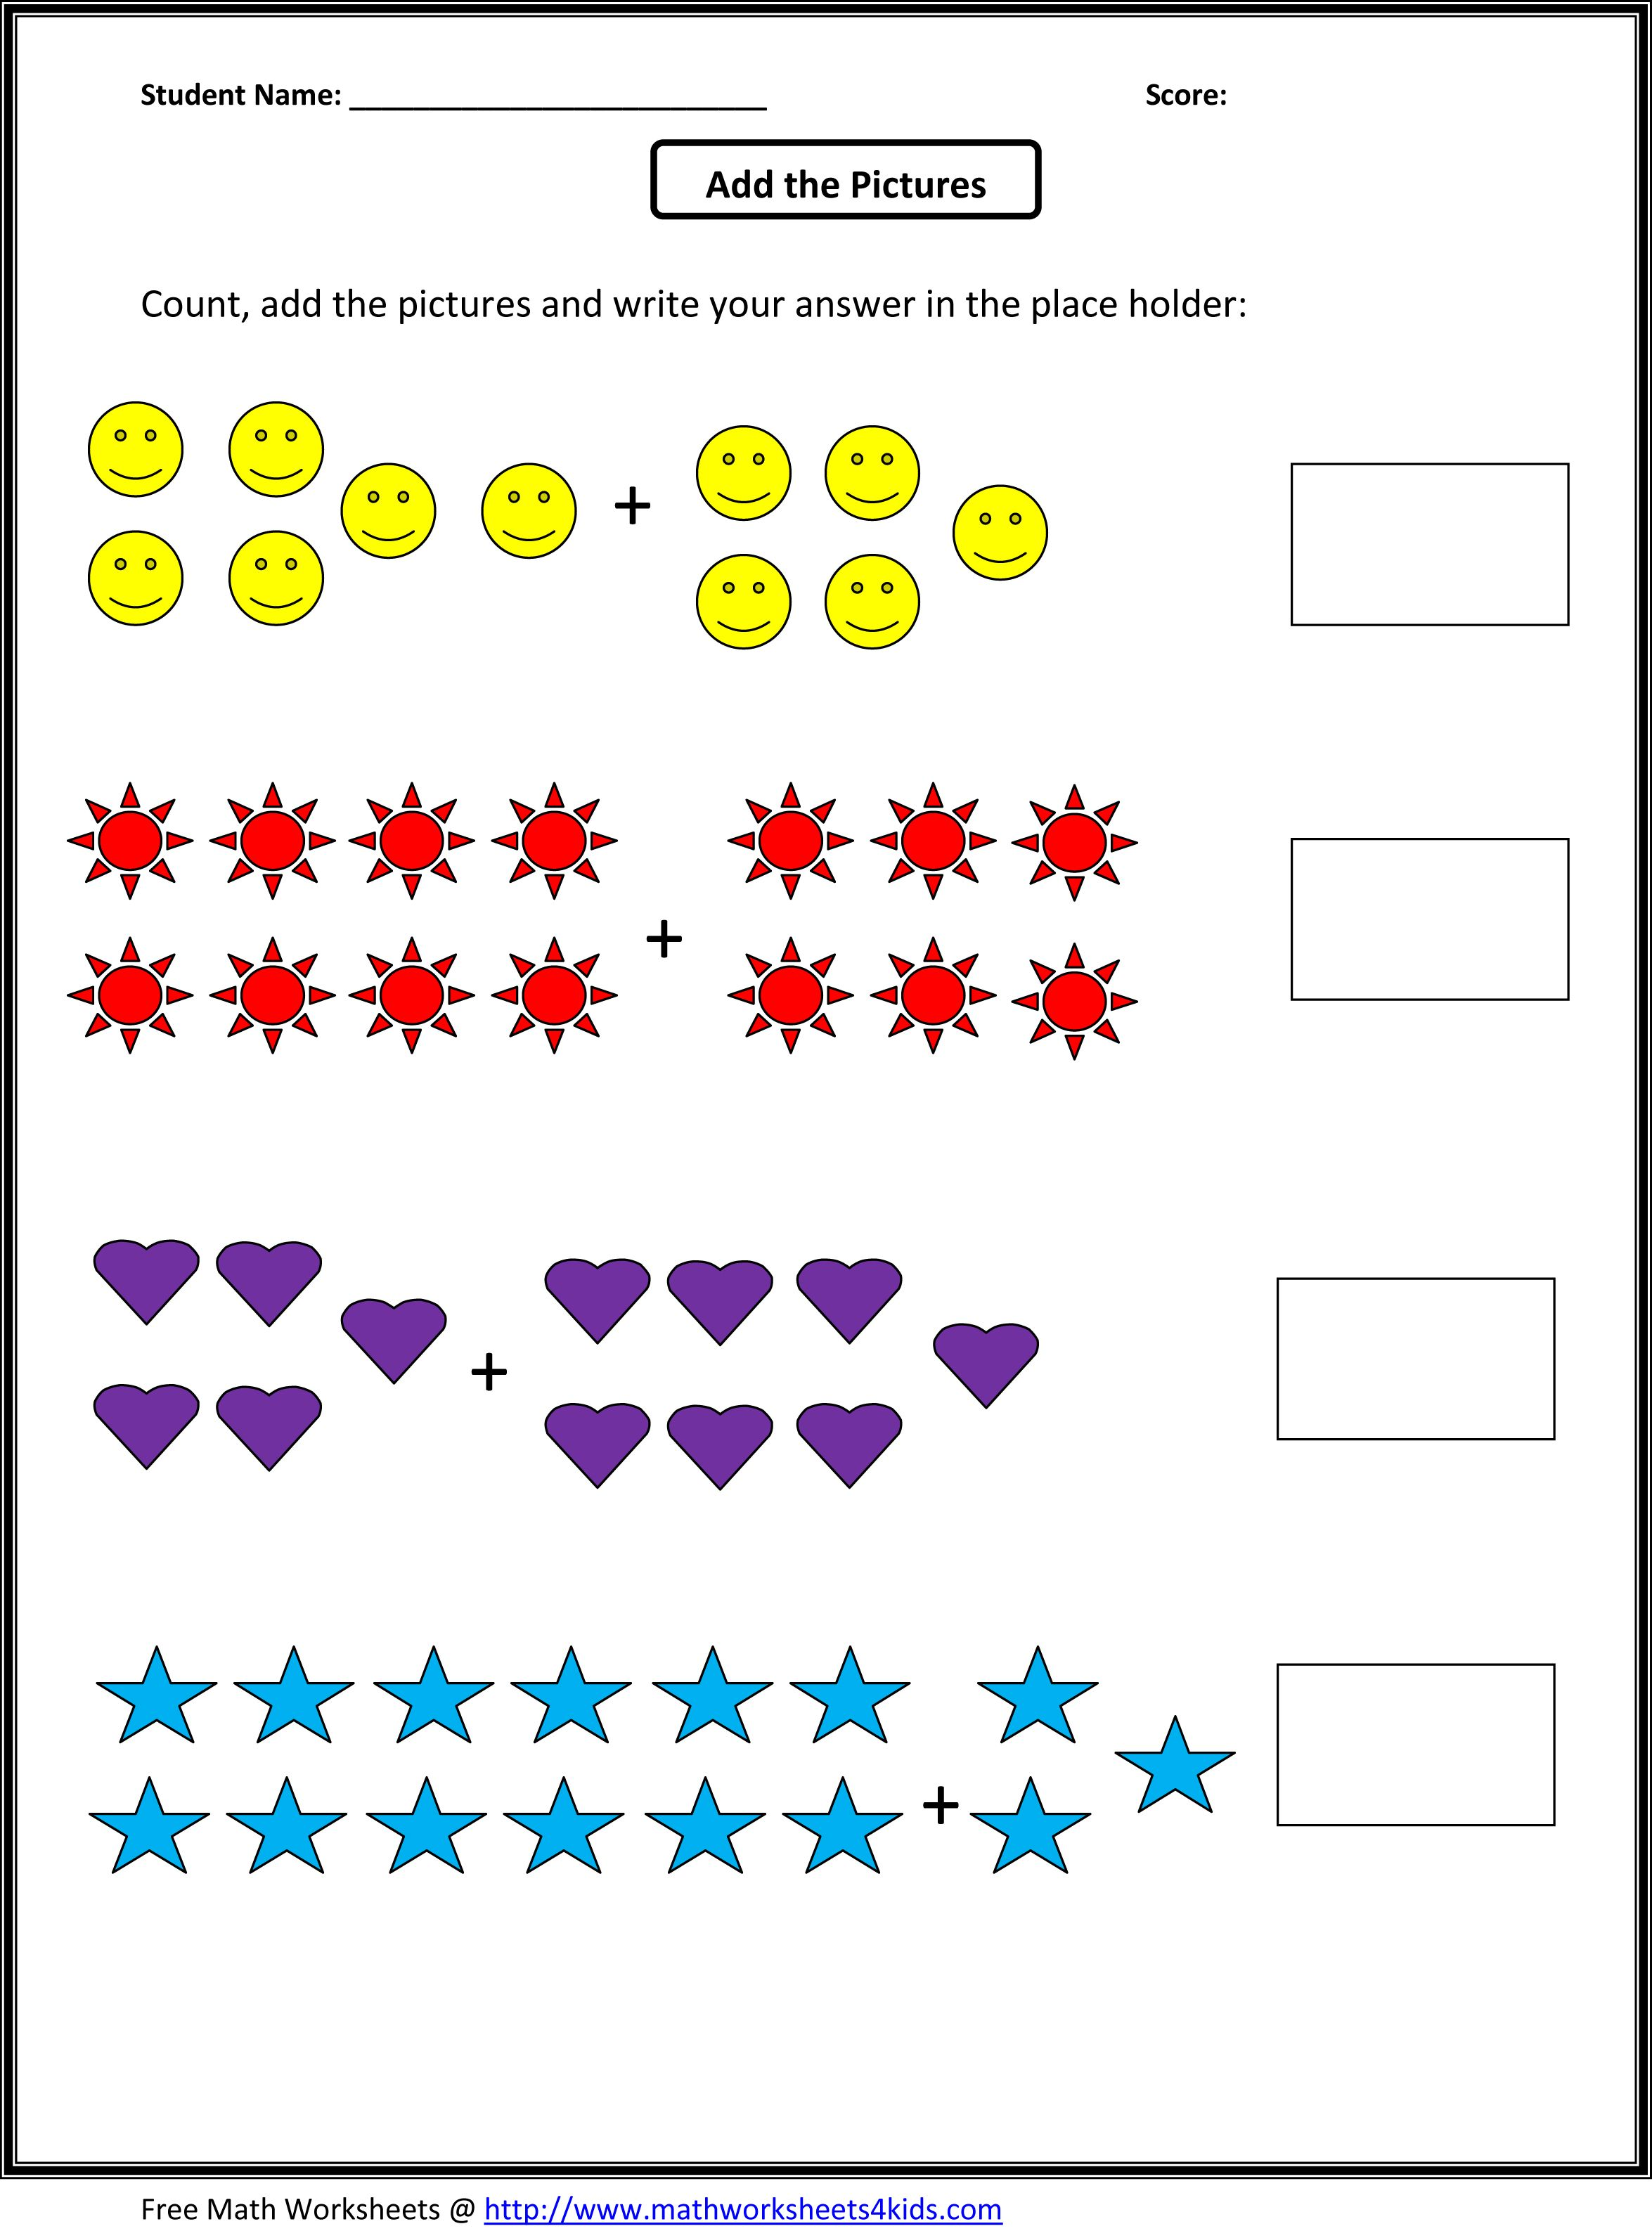 grade 1 addition math worksheets – Maths Worksheets Grade 1